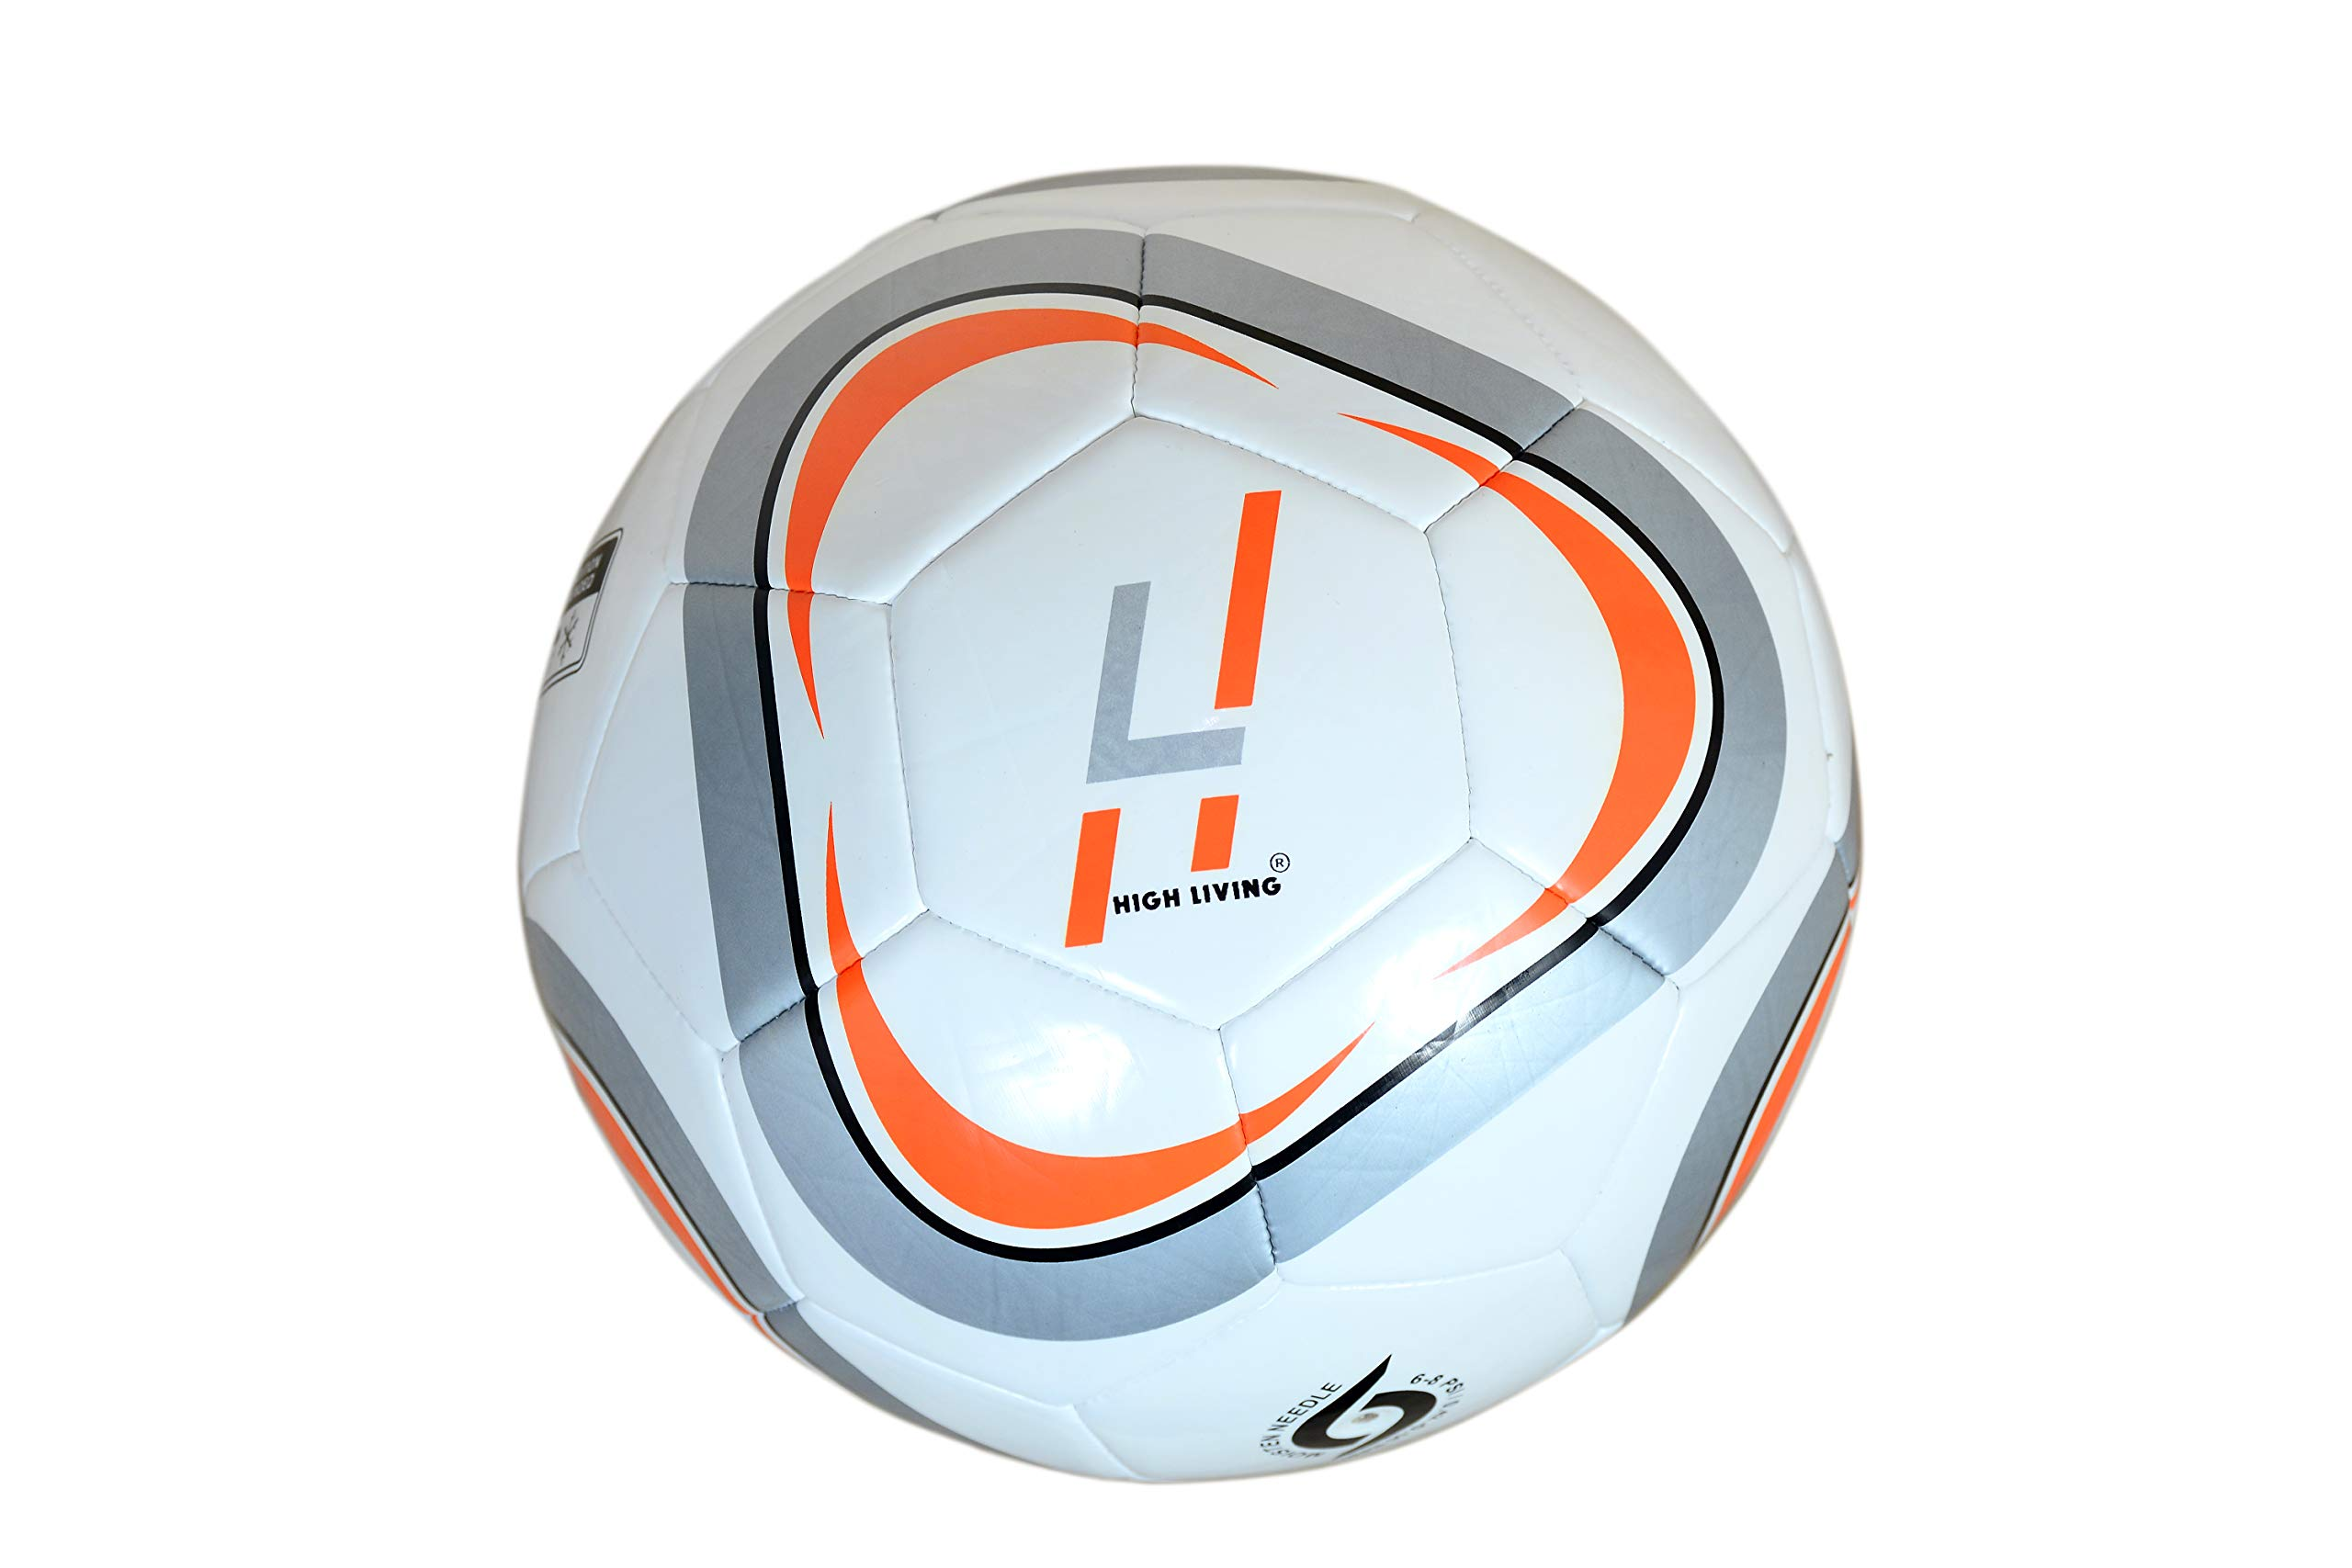 Highliving Football Size 5 Training Professional Club Team Indoor & Outdoor Match Soccer Ball